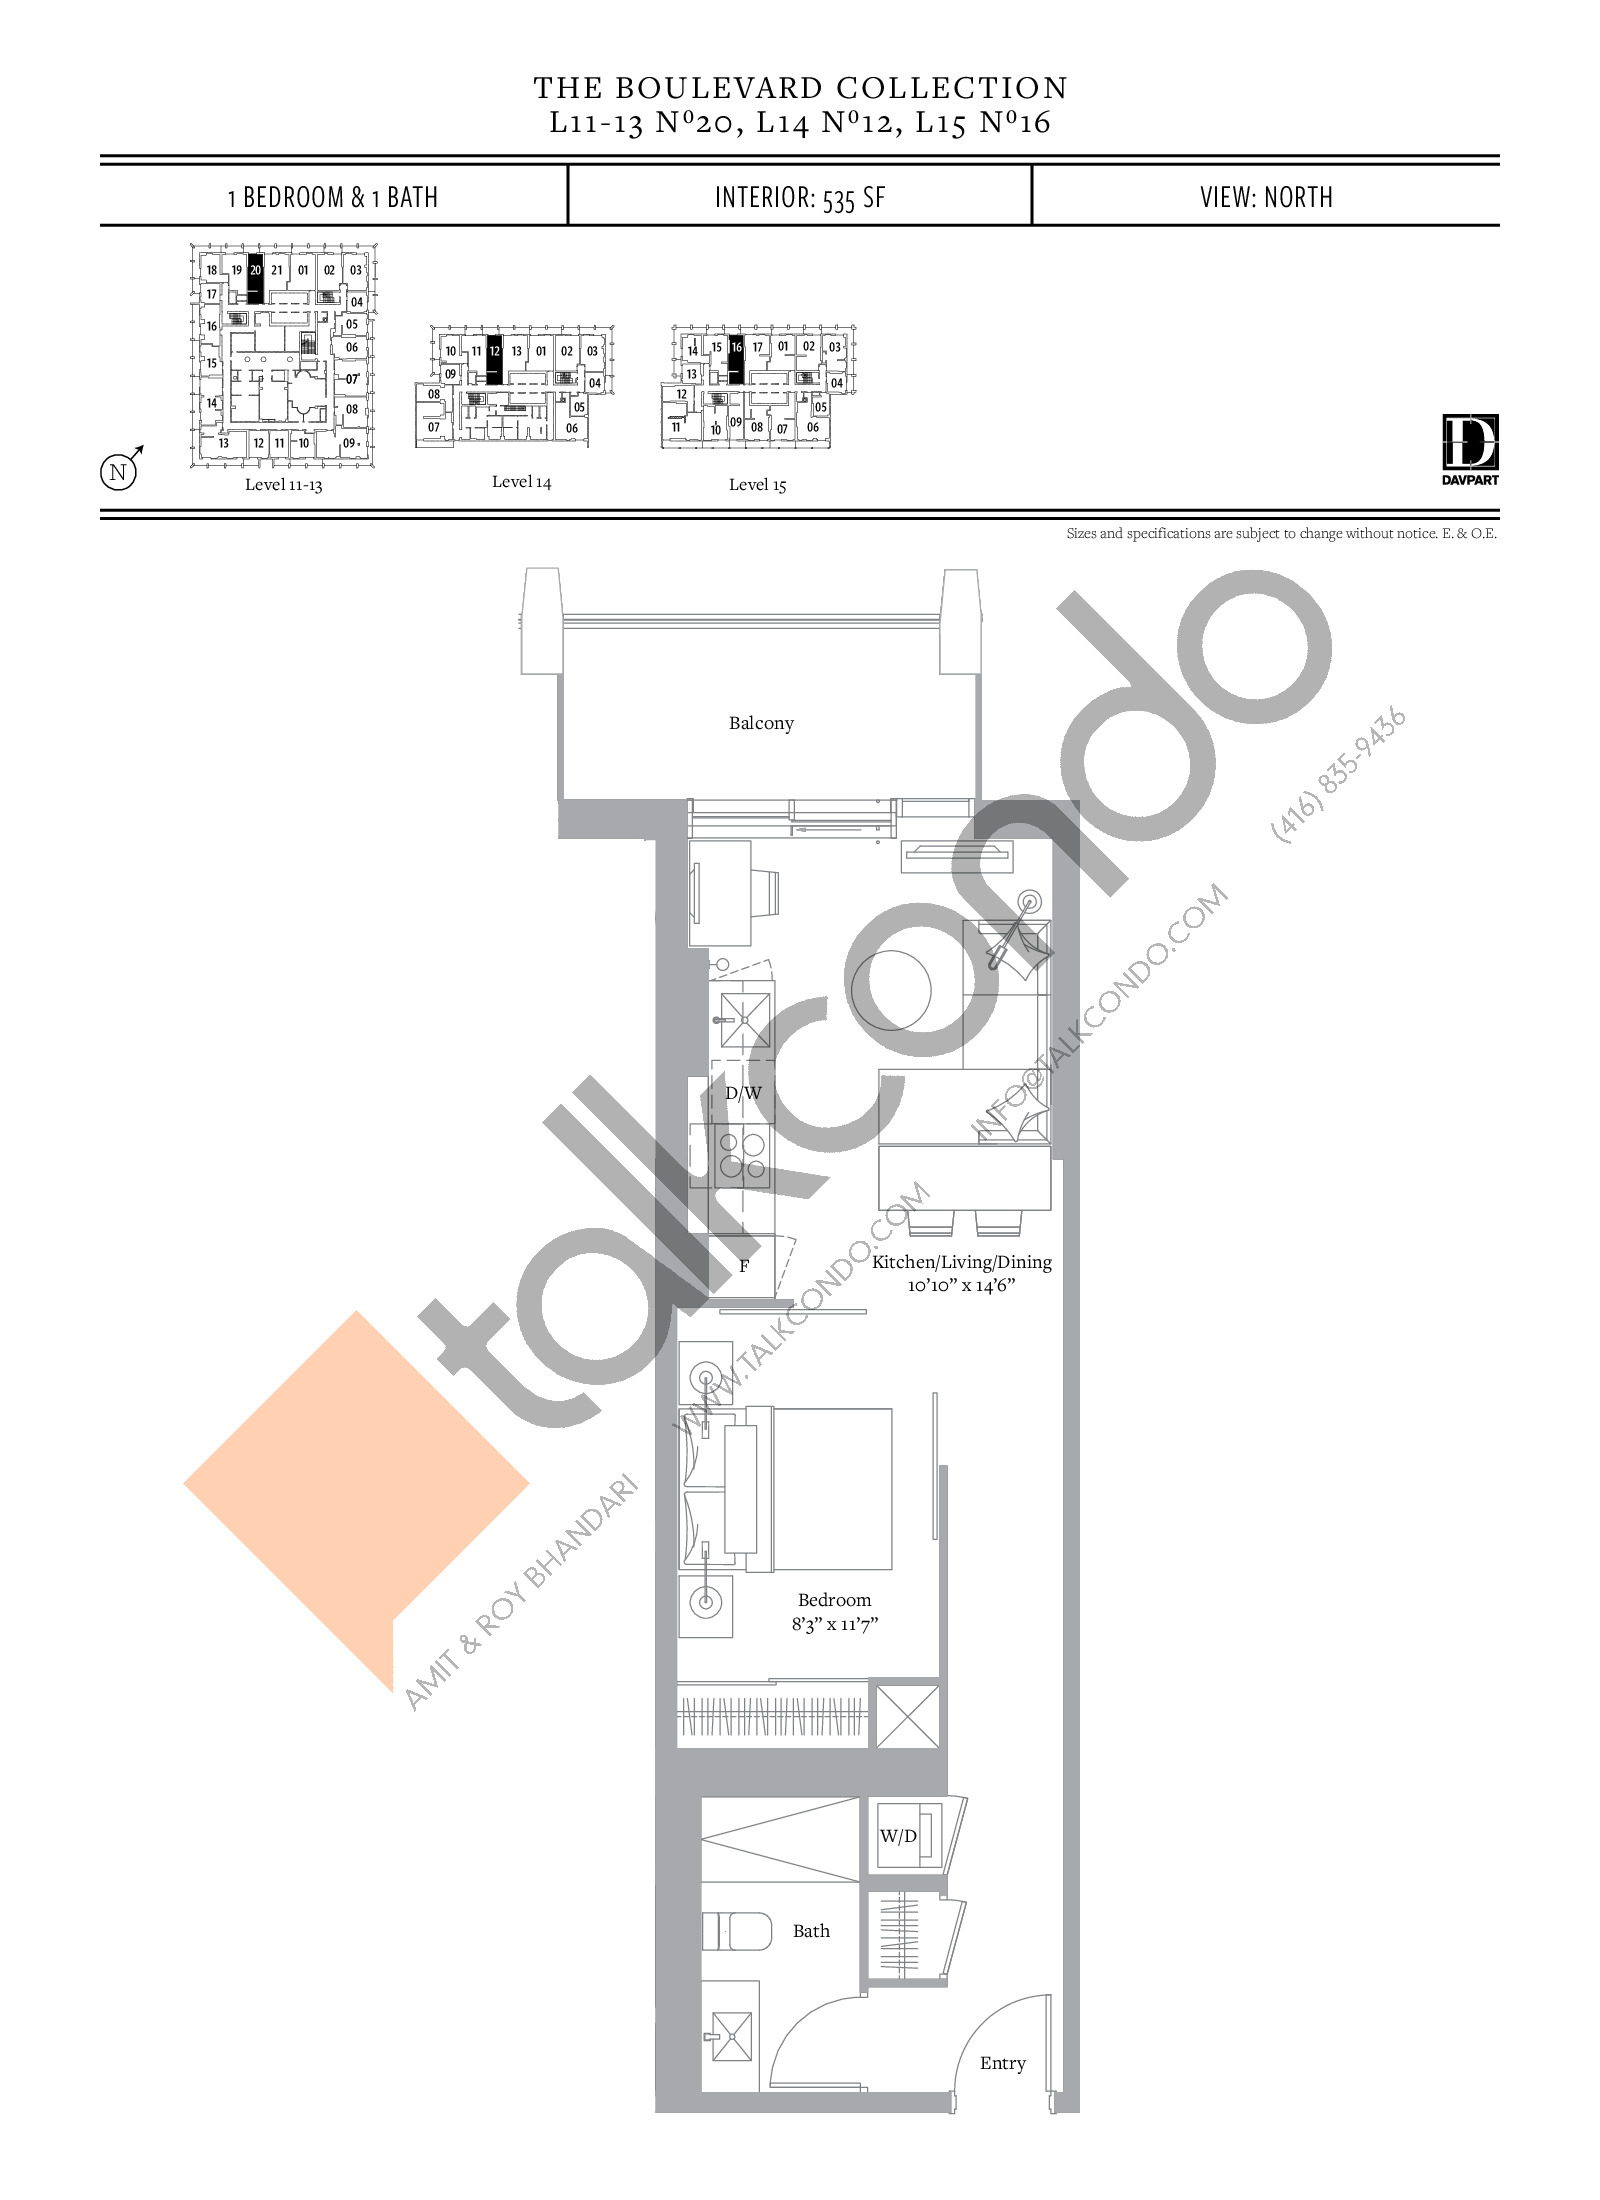 No 20, 12, 16 - The Boulevard Collection Floor Plan at The United Bldg. Condos - 535 sq.ft